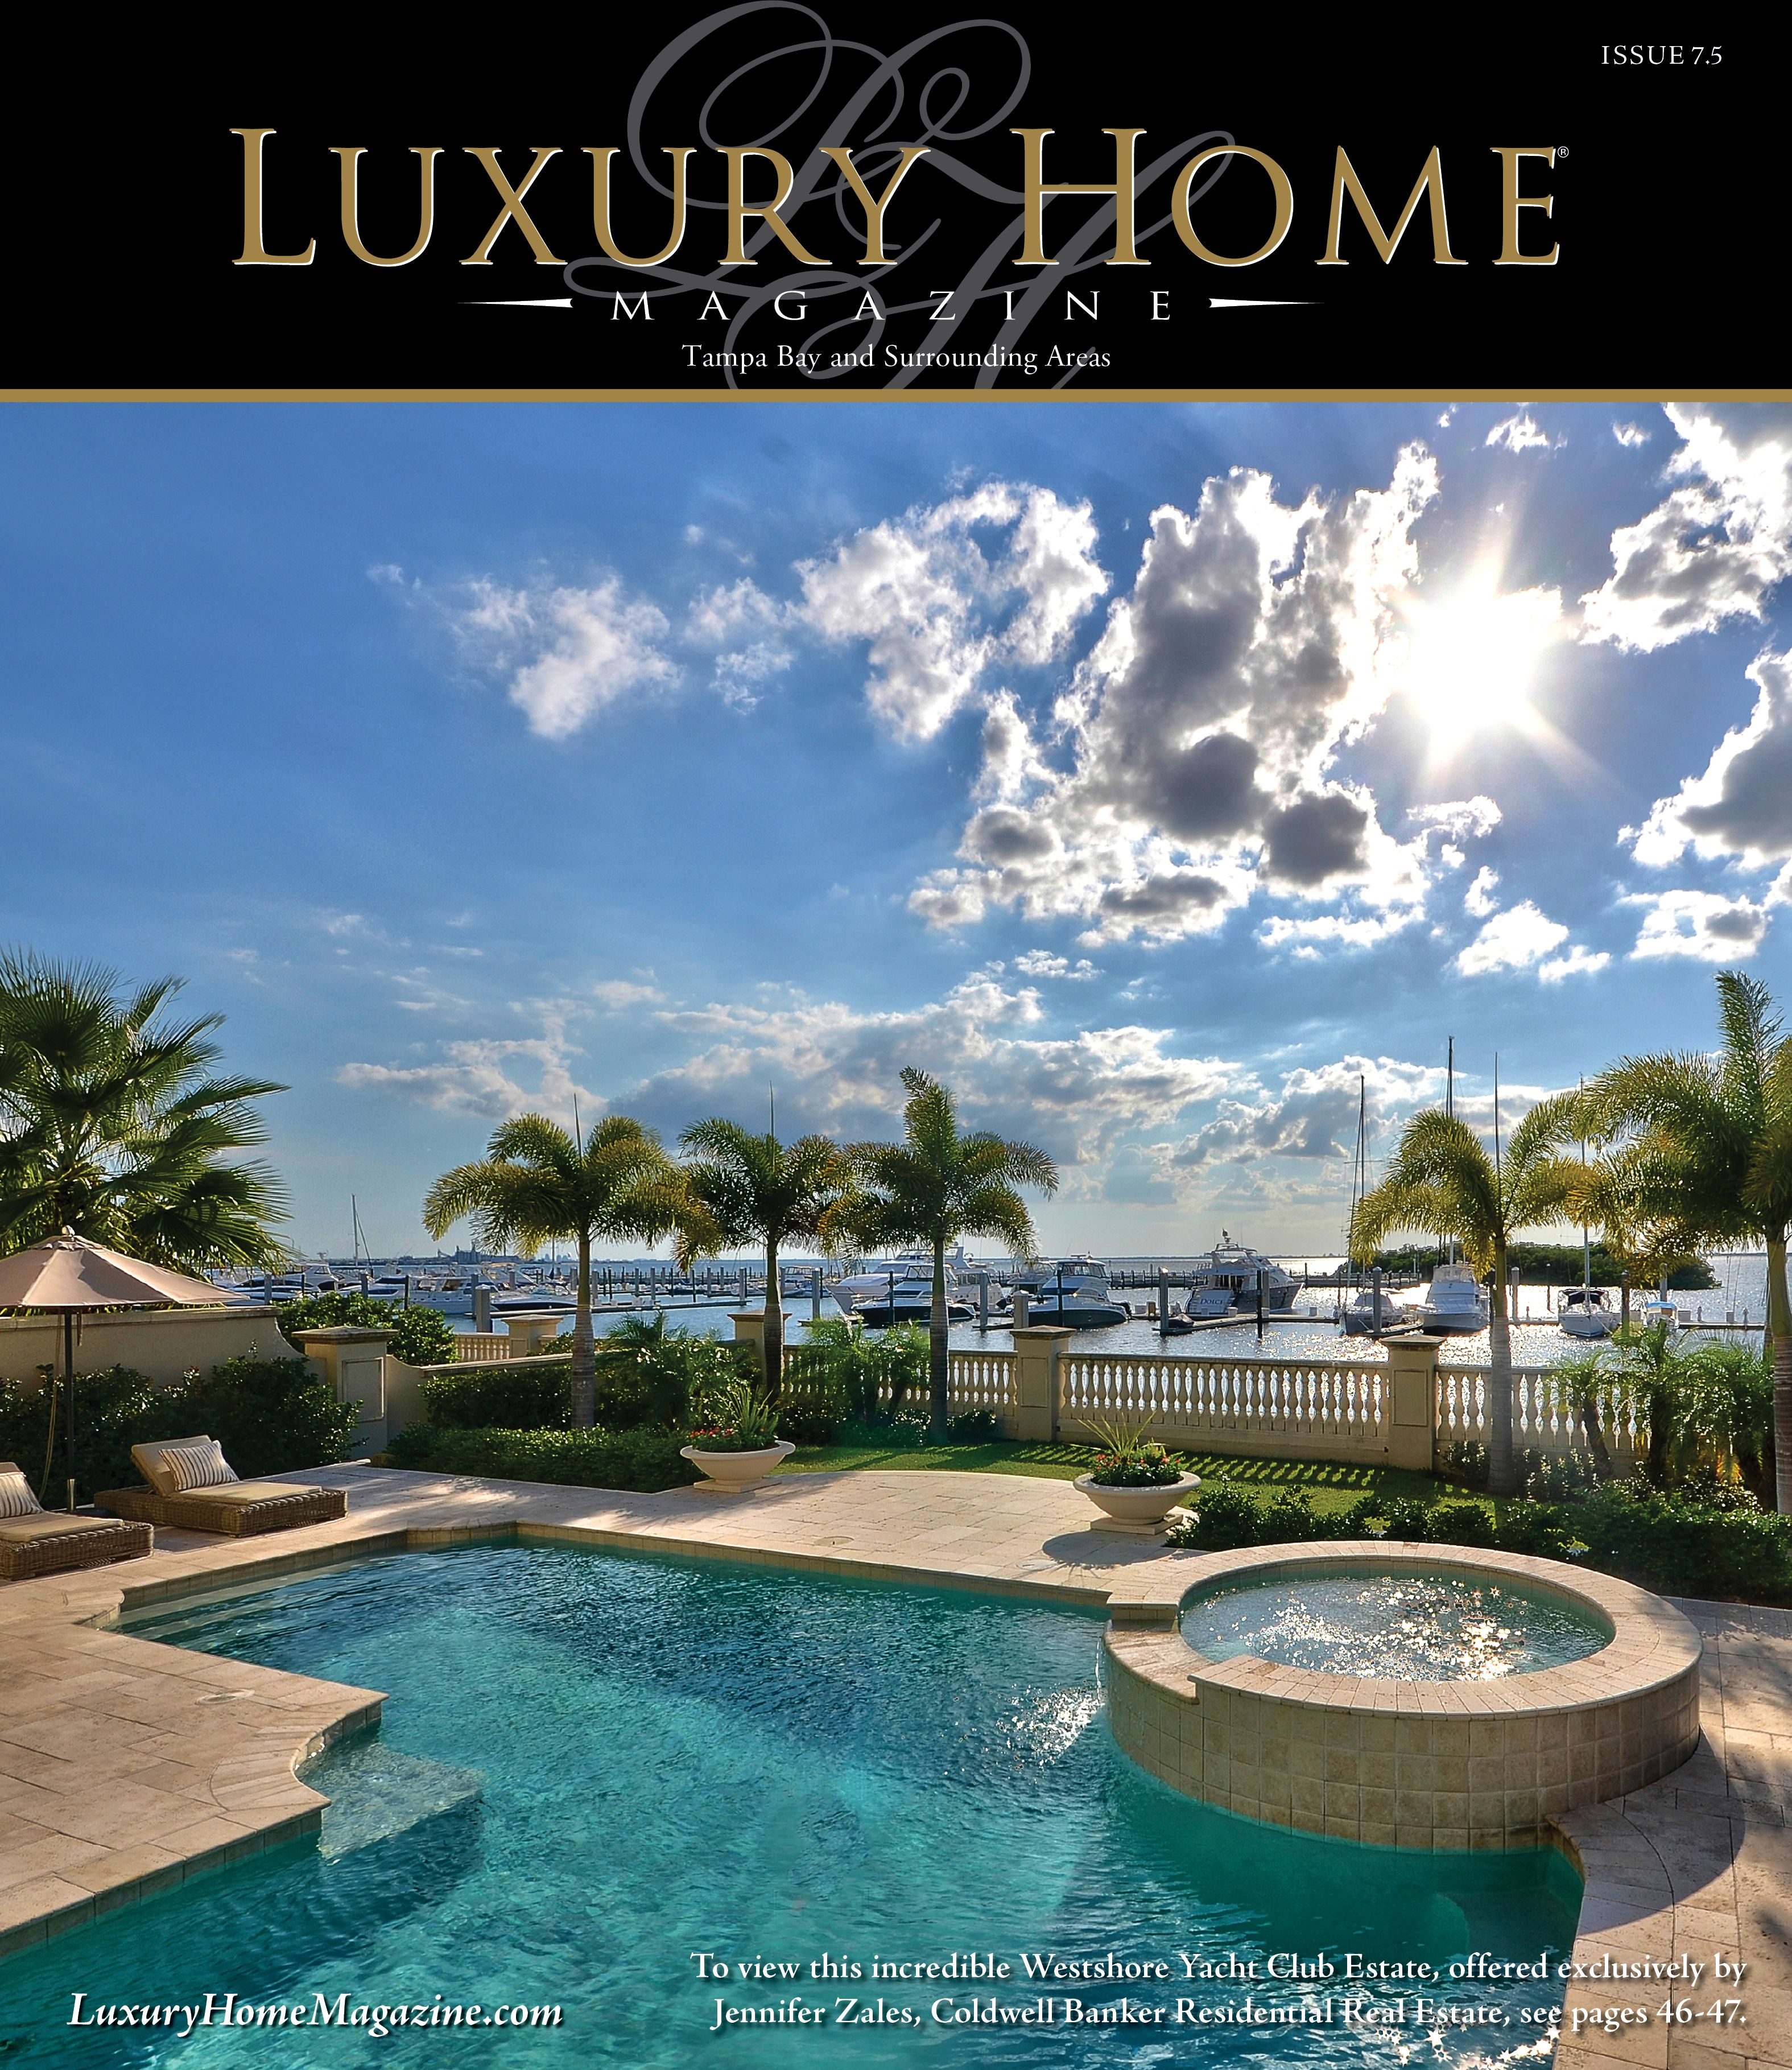 Luxury Home Magazine Of Tampa Bay Issue 7 5 Cover Photography By Peggy Taylor Luxury Homes House And Home Magazine Indoor Outdoor Pool